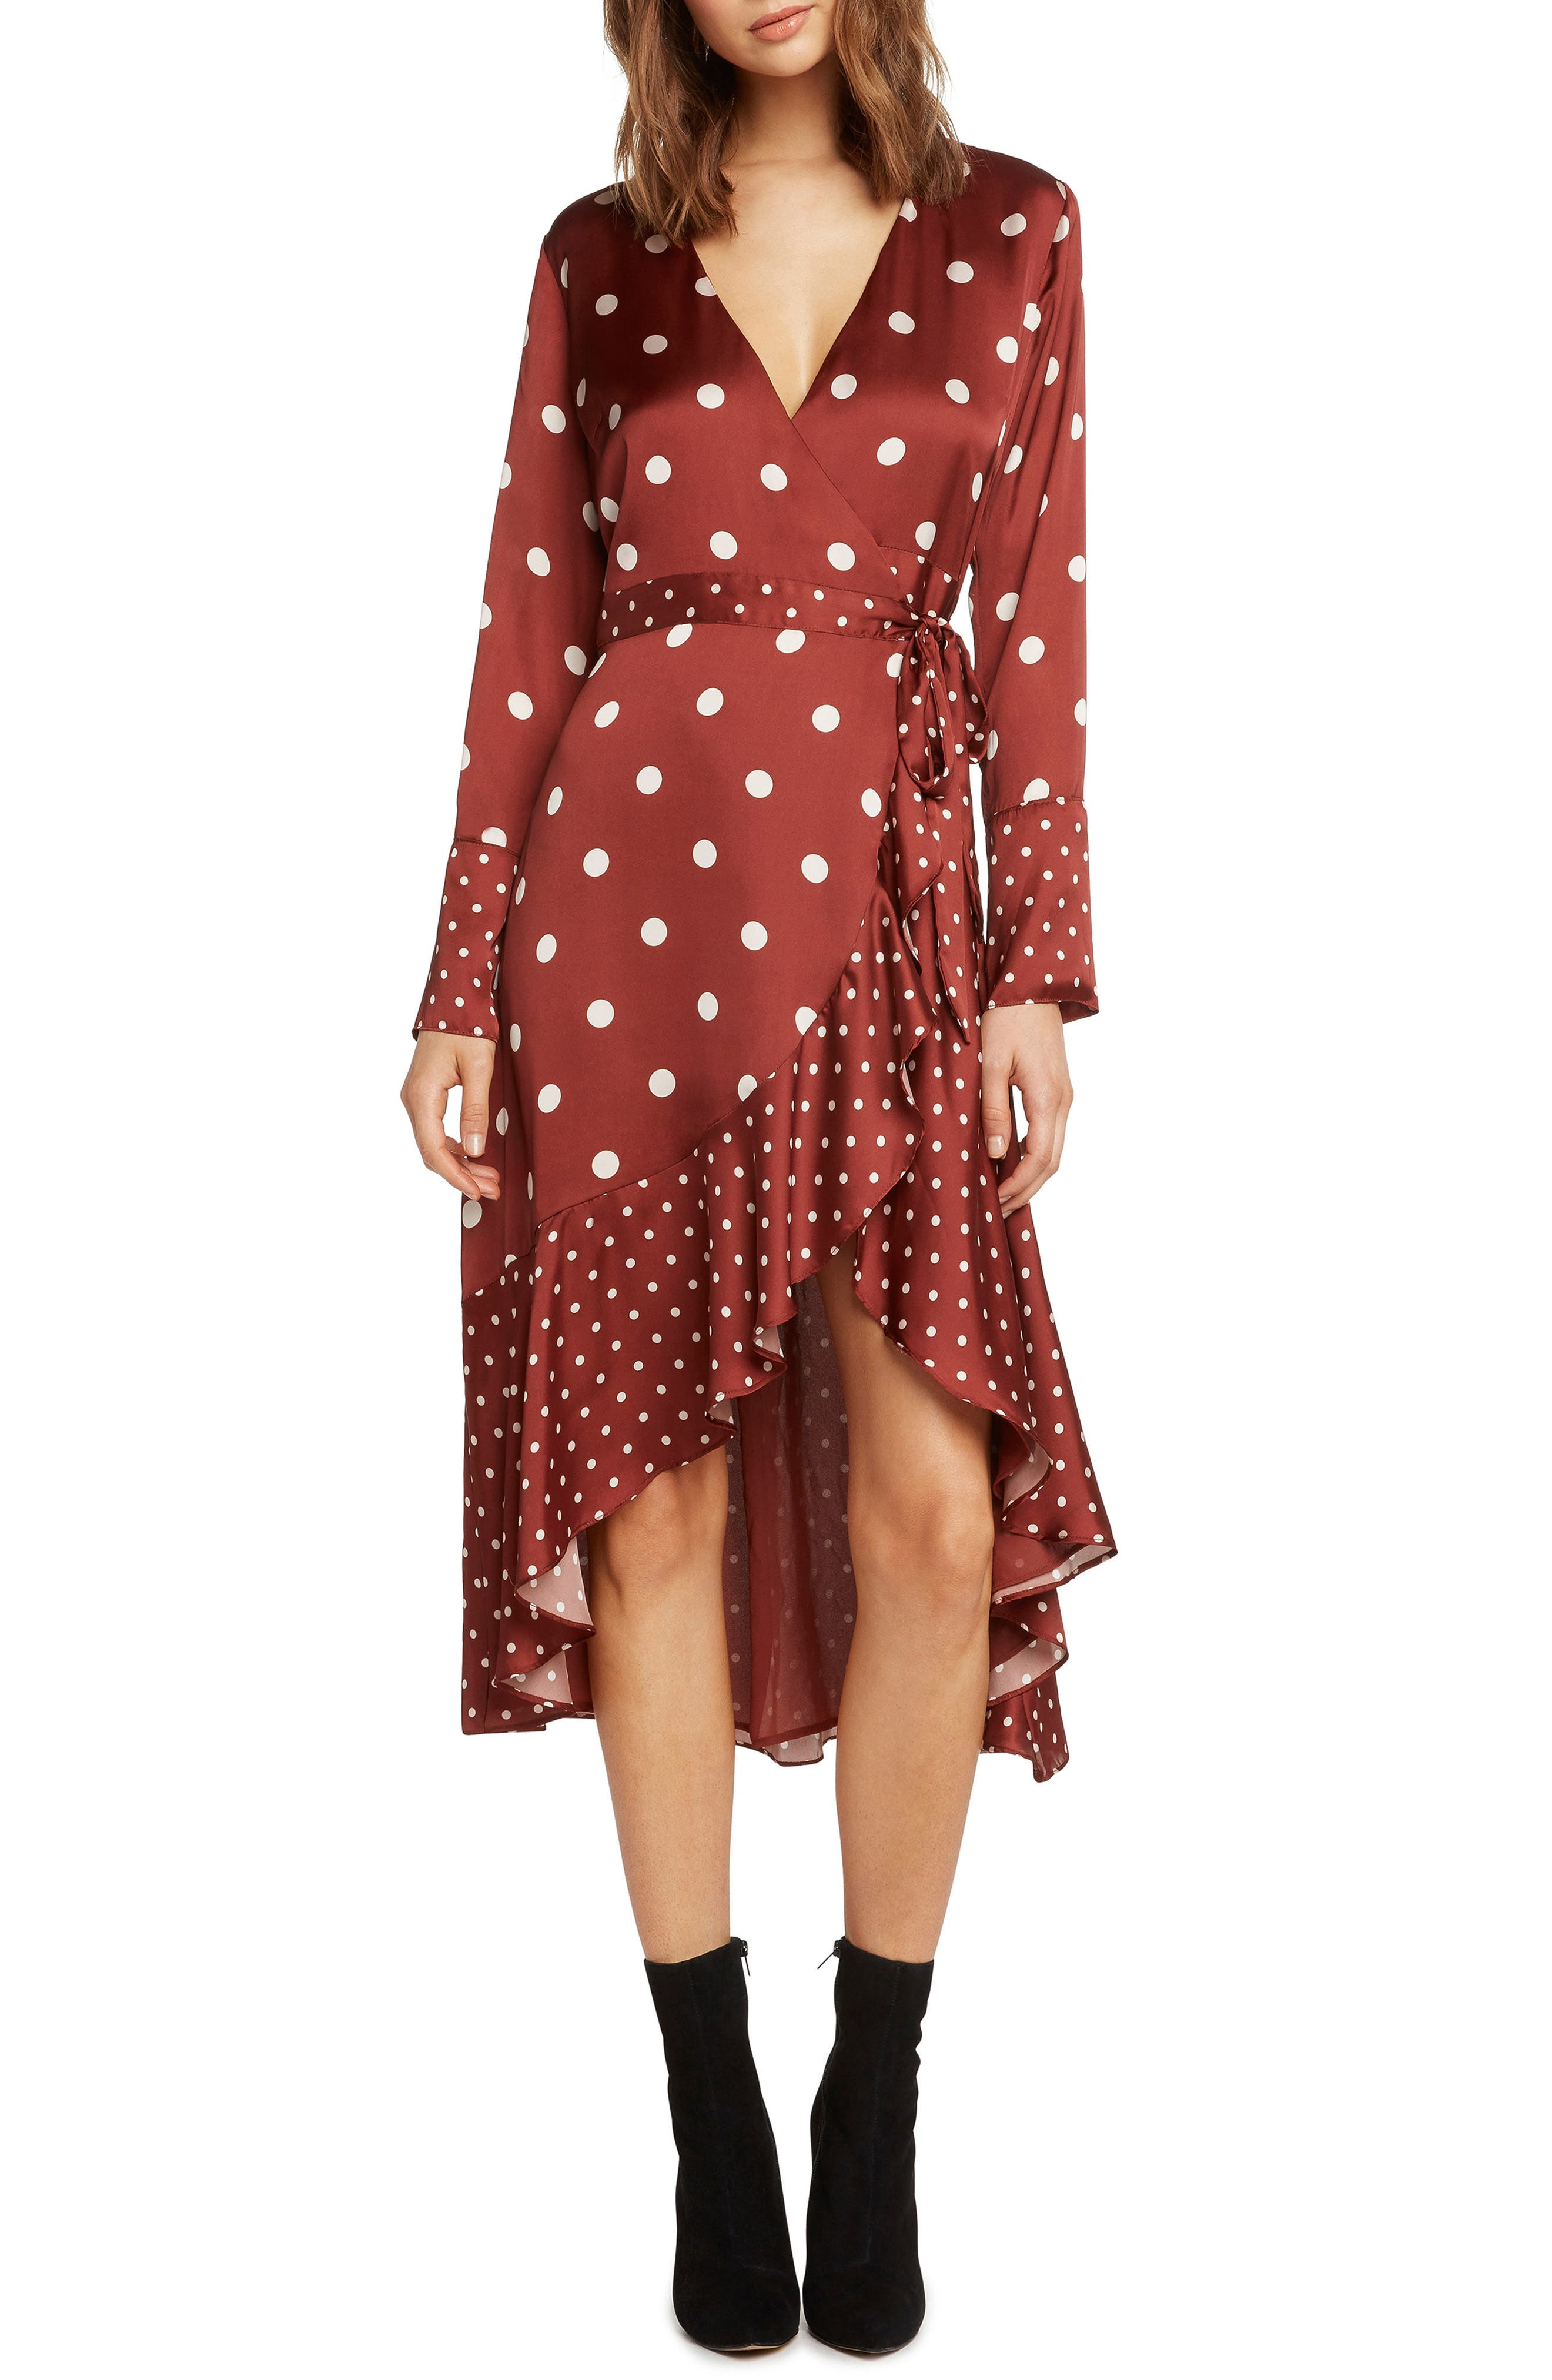 WILLOW & CLAY Mix Dot Satin Wrap Dress in Rust